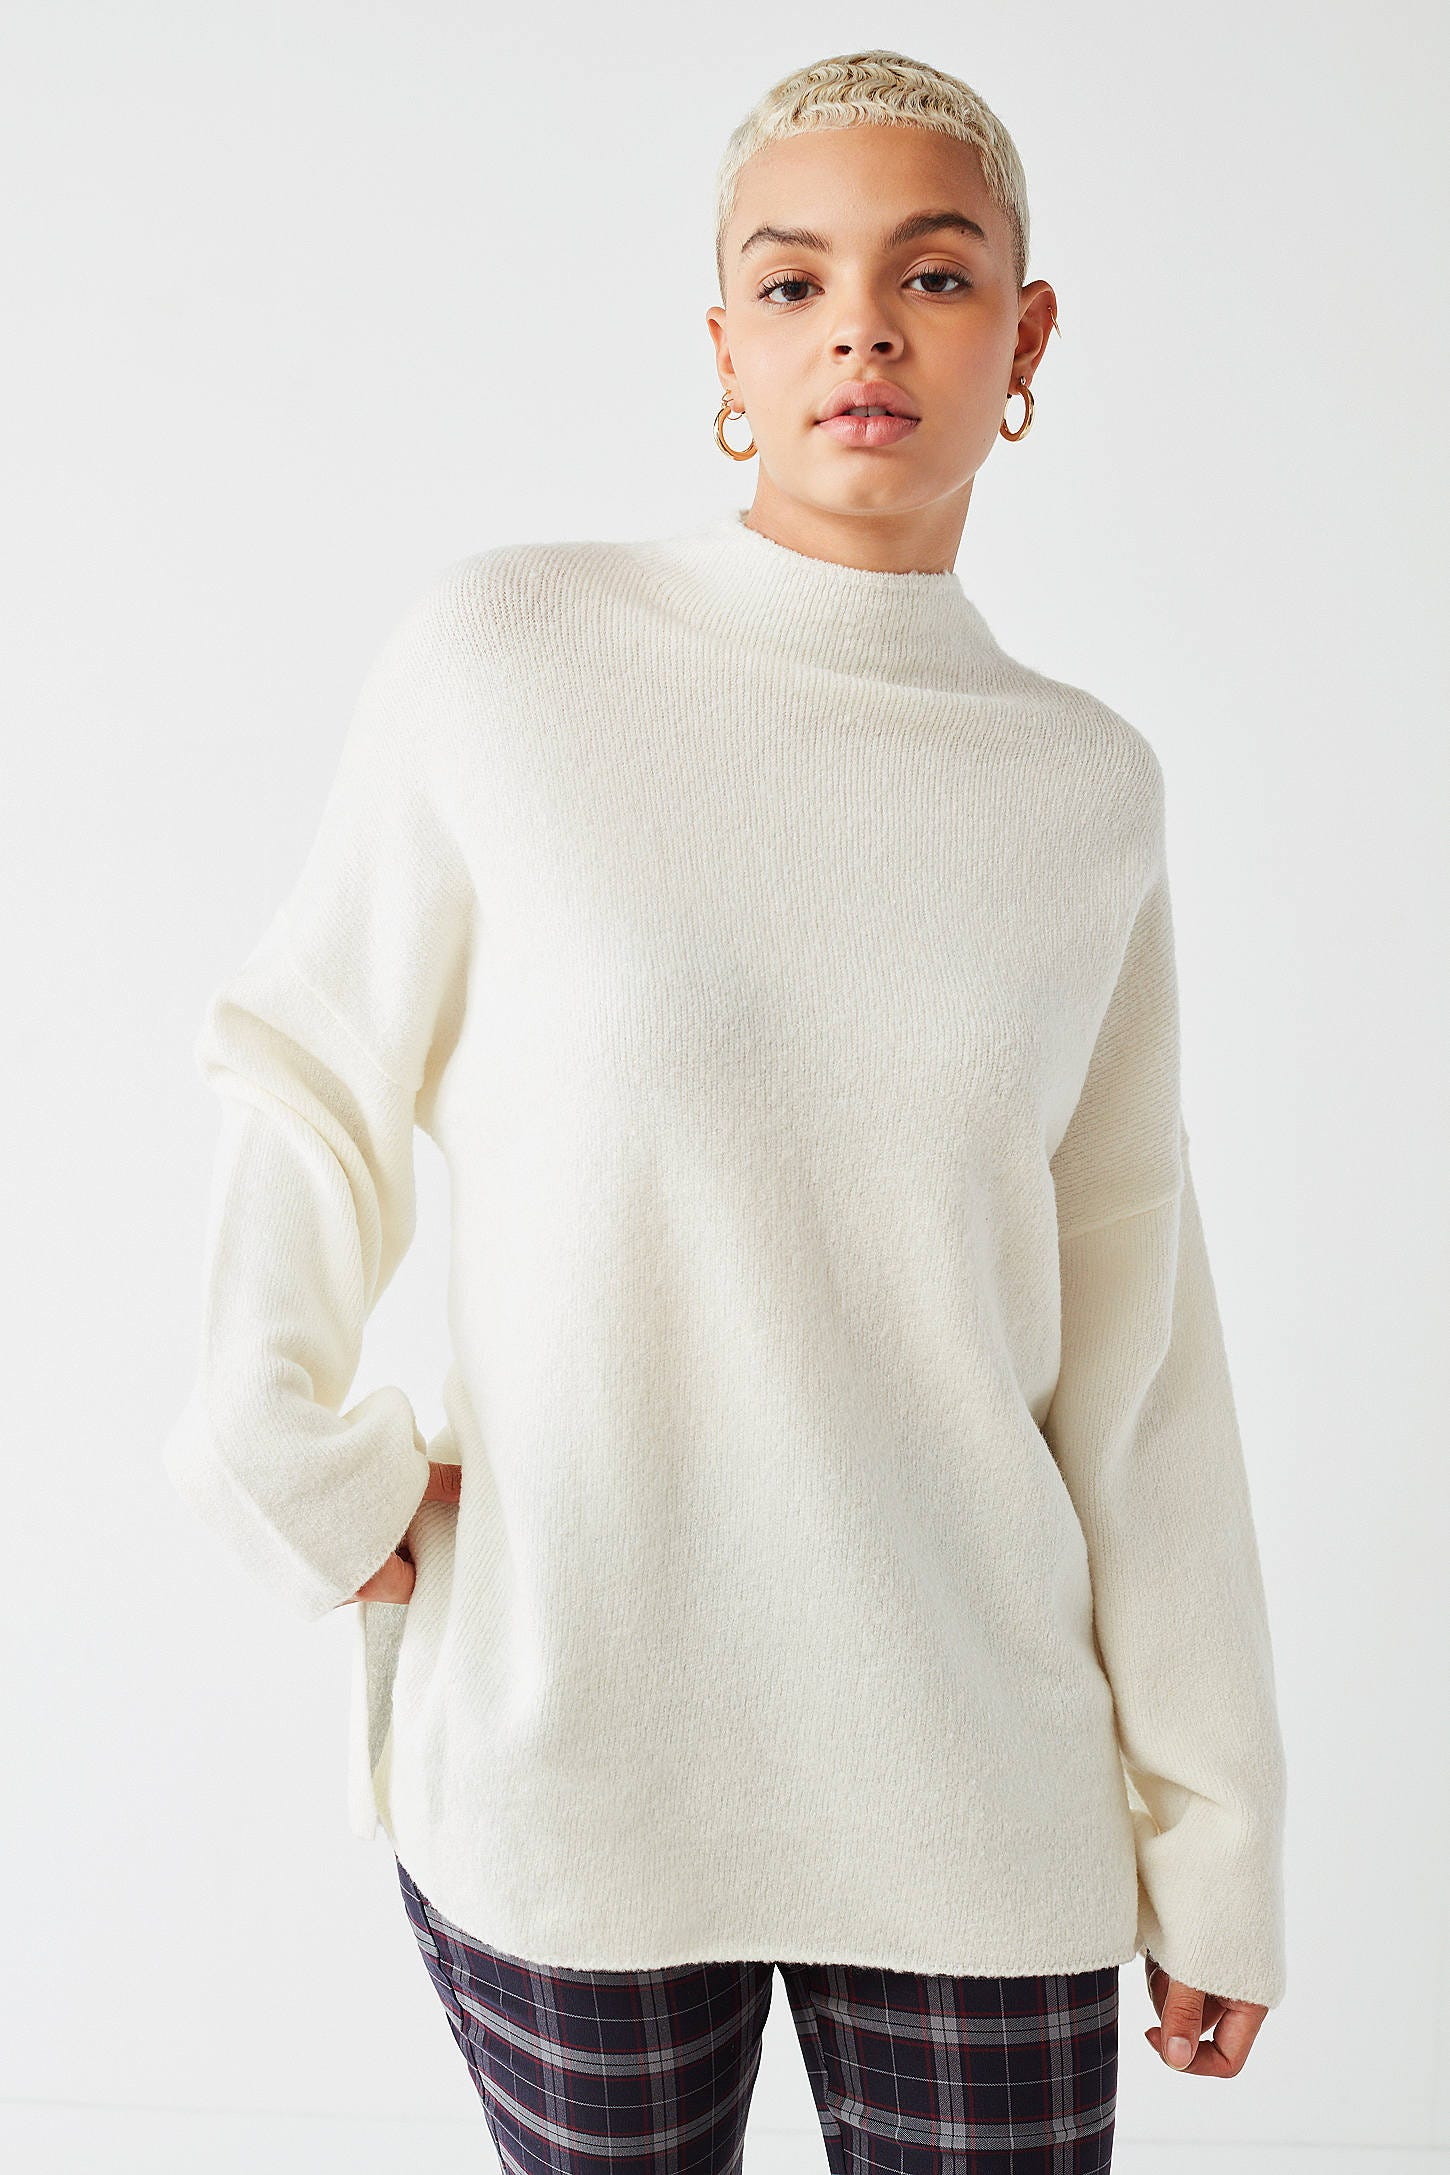 cute oversized sweater for women comfy sweater outfits